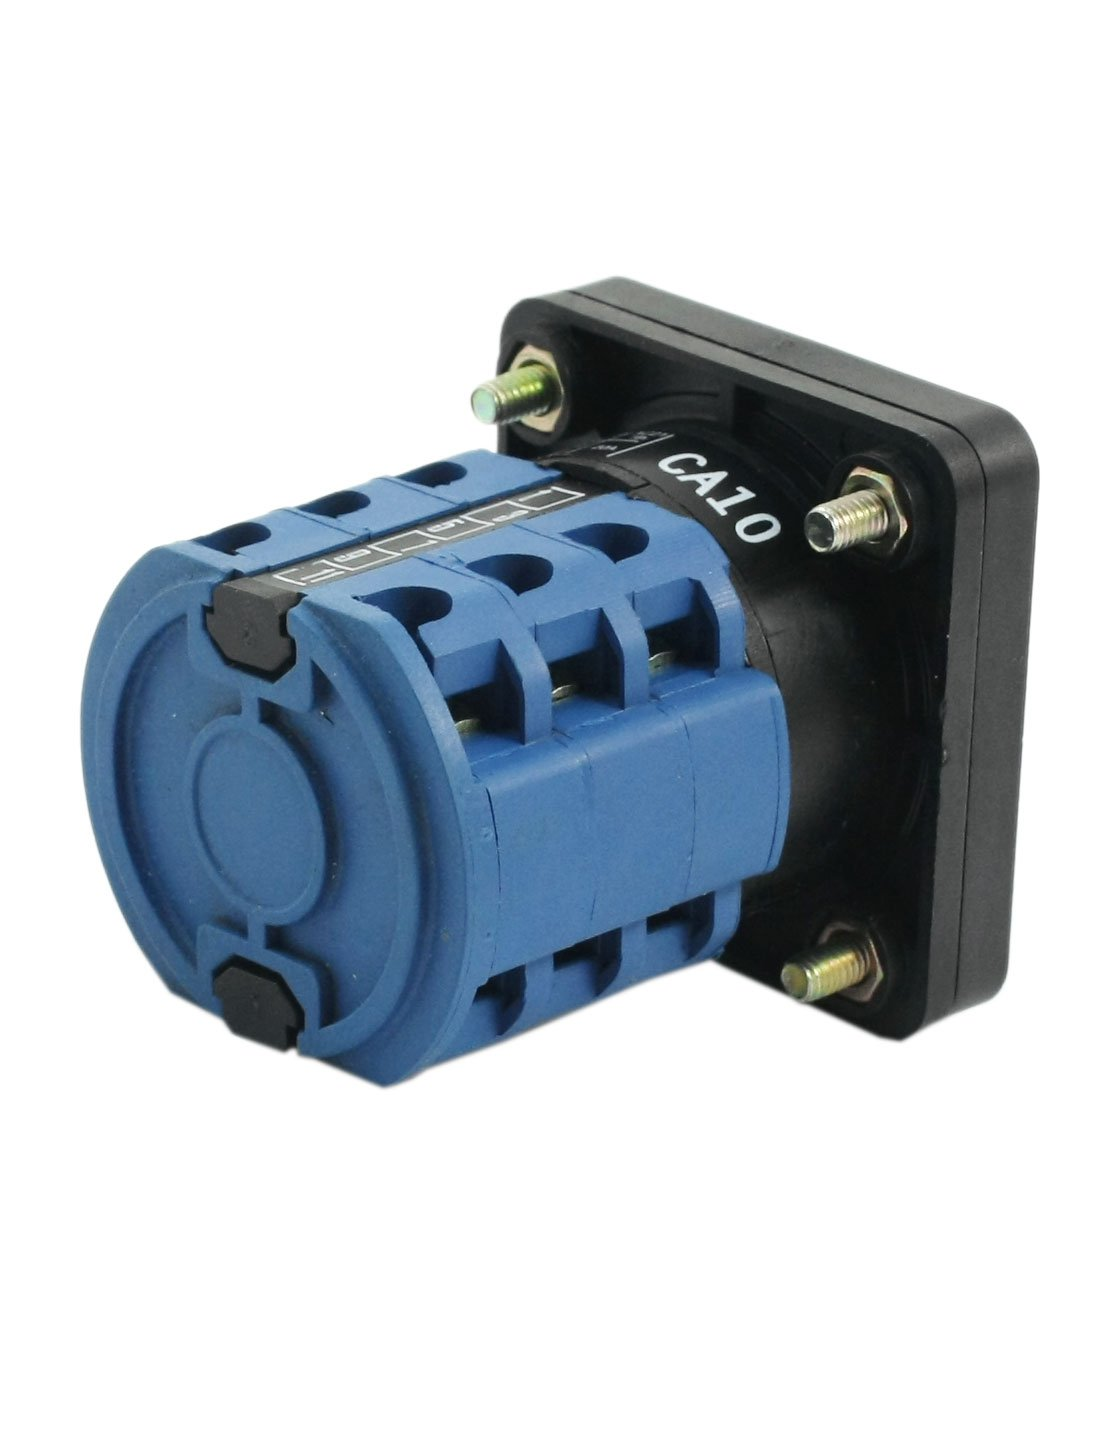 uxcell Square Panel Mounting 2-Position 3-Phase Rotary Changeover Switch CA10 by uxcell (Image #2)